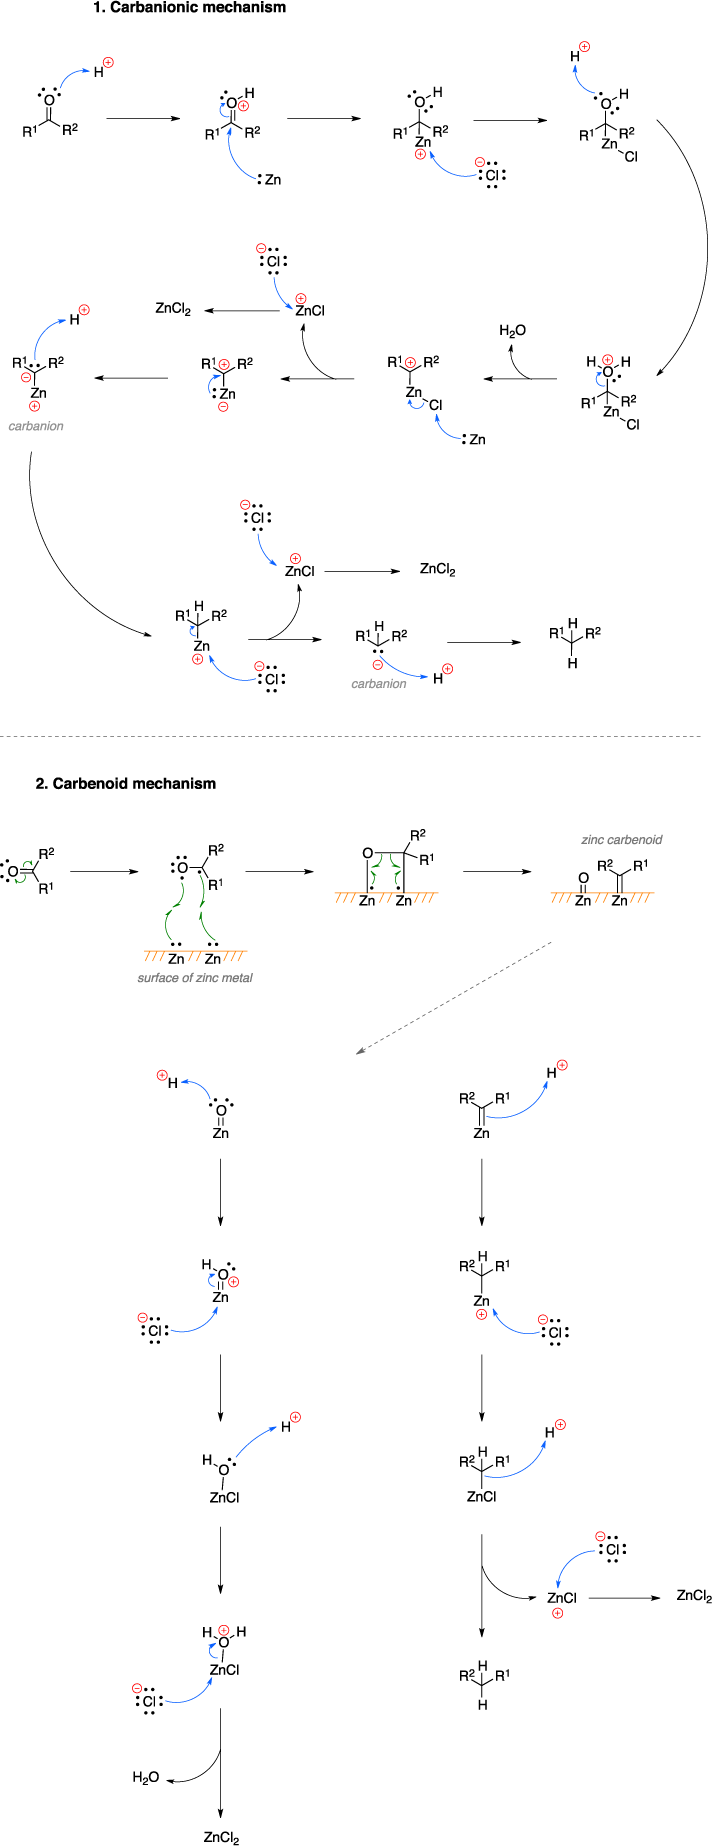 Mechanism of the Clemmensen reduction. 1. Carbanionic mechanism. 2. Carbenoid mechanism on surface of zinc metal and zinc carbenoid.